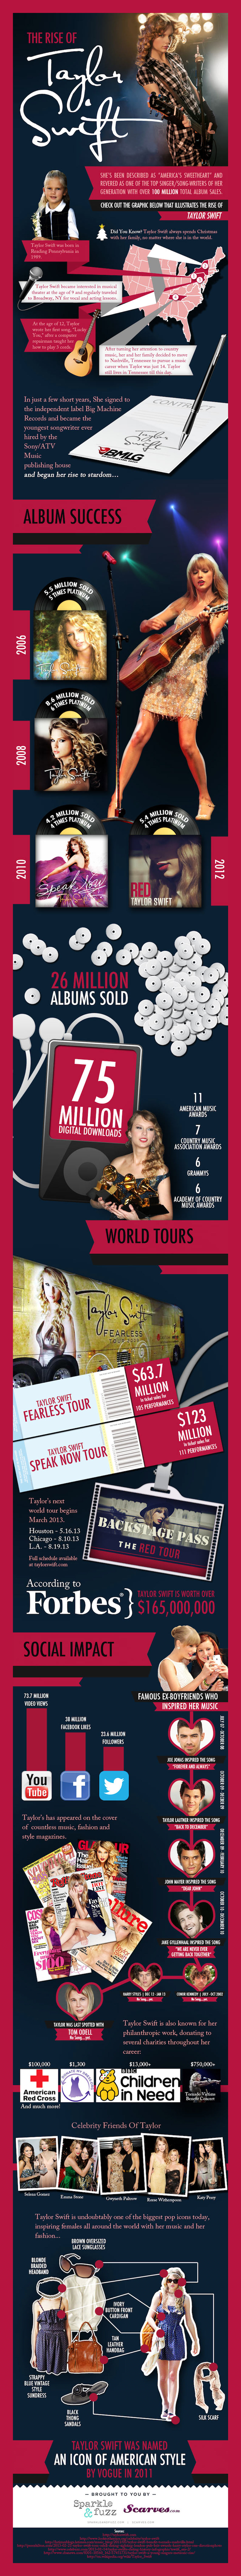 The Rise of Taylor Swift Infographic